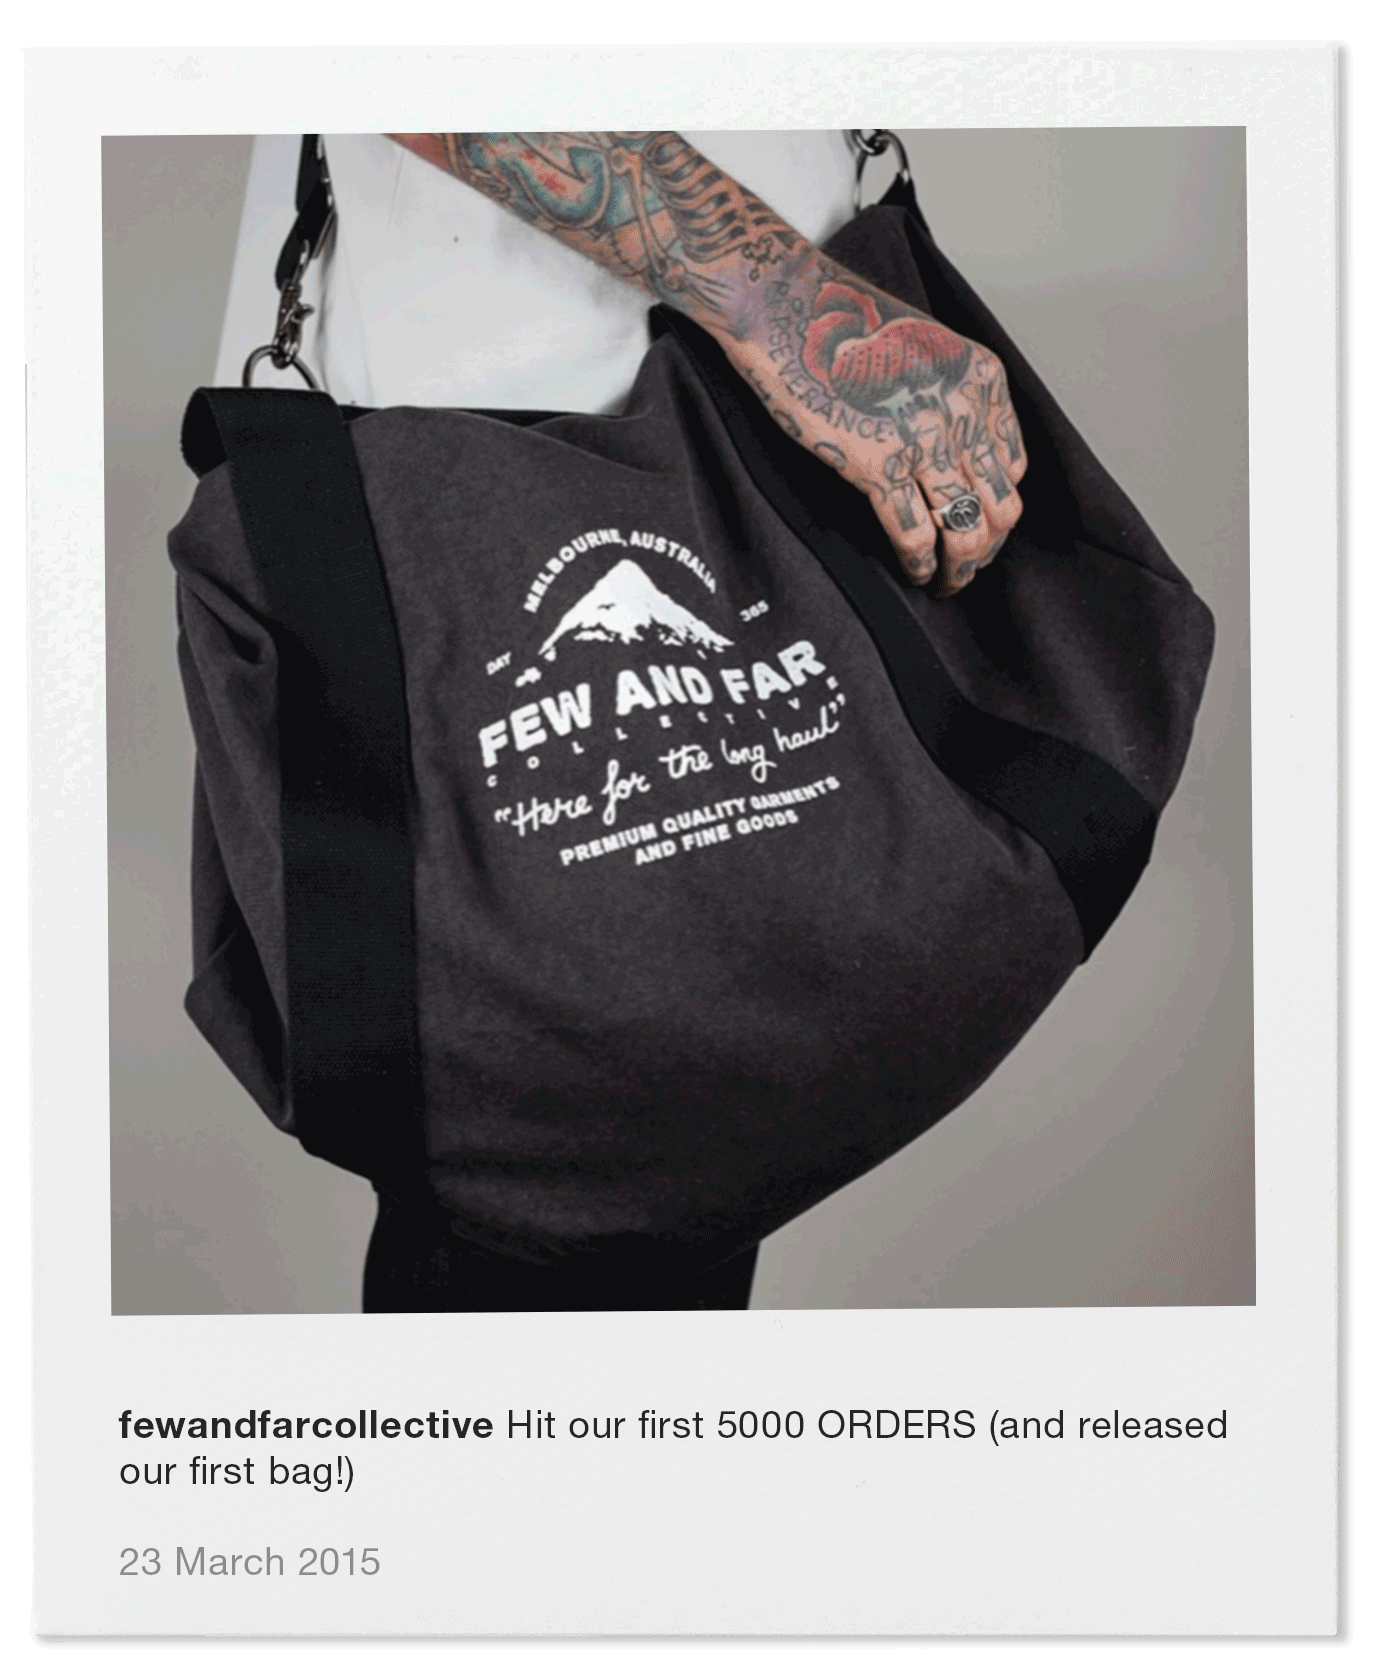 Hit our first 5000 ORDERS (and released our first bag!)